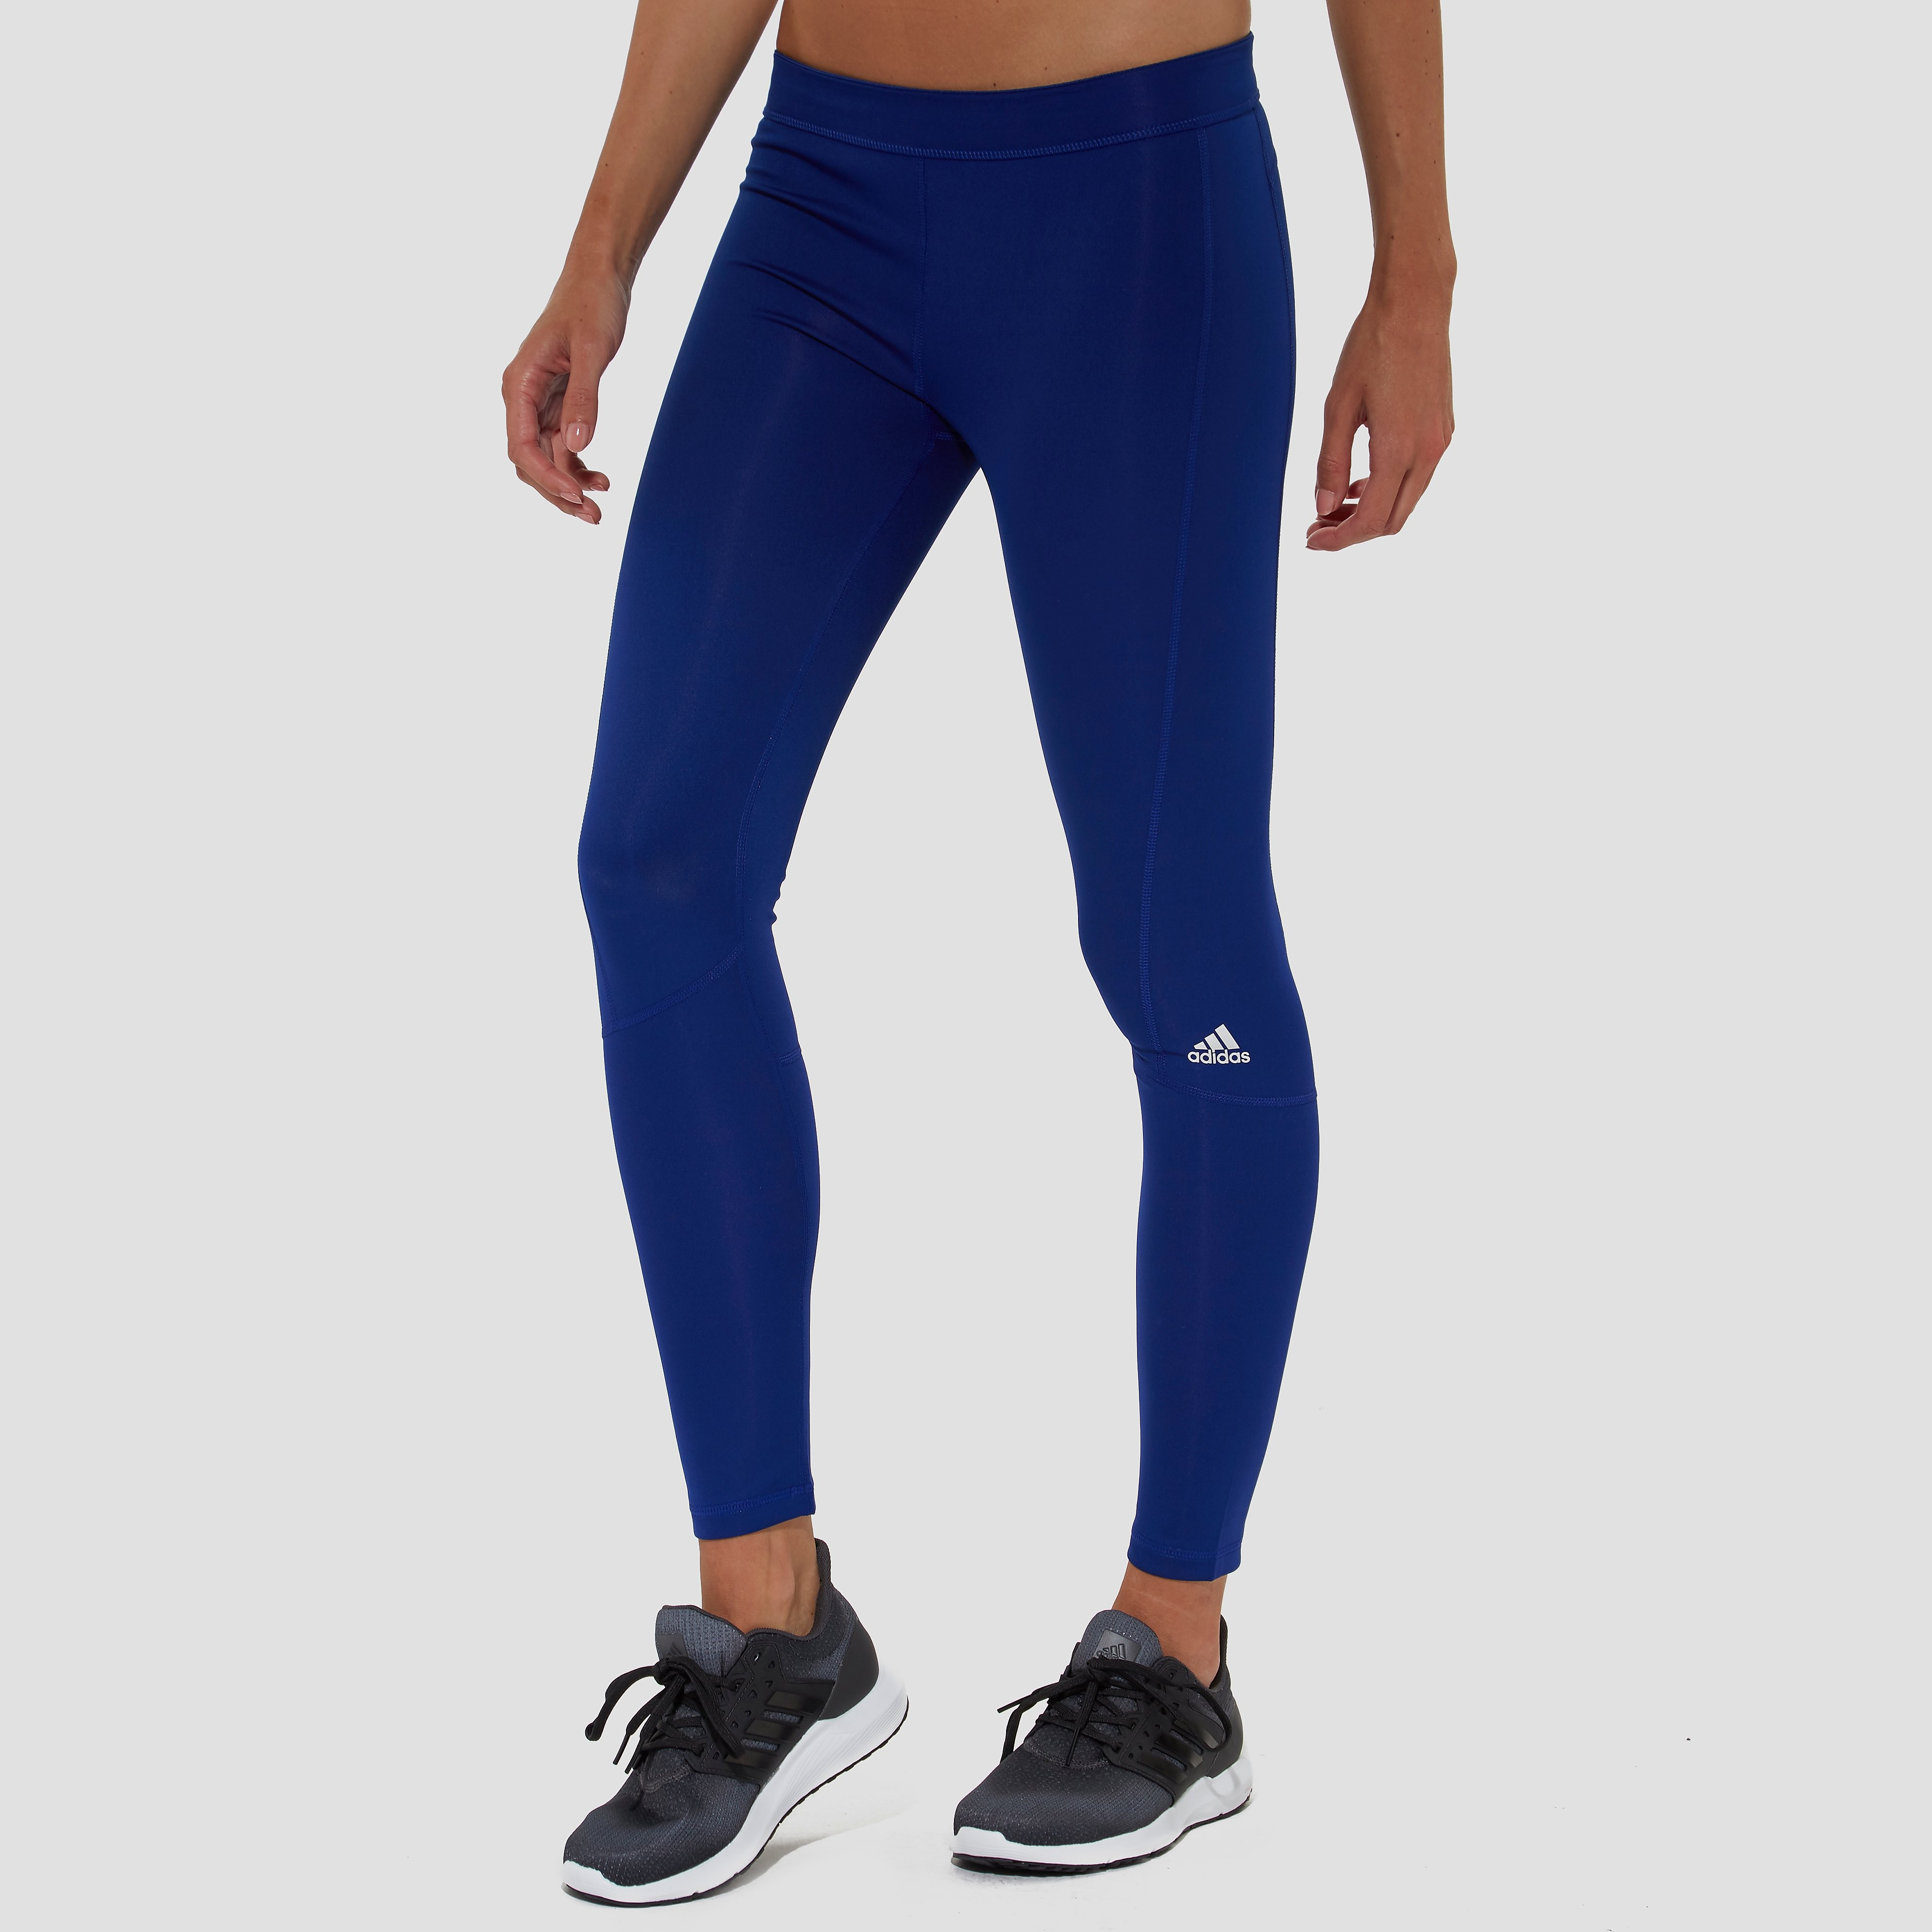 ADIDAS PERFORMANCE TECHFIT LONG TIGHT BLAUW DAMES